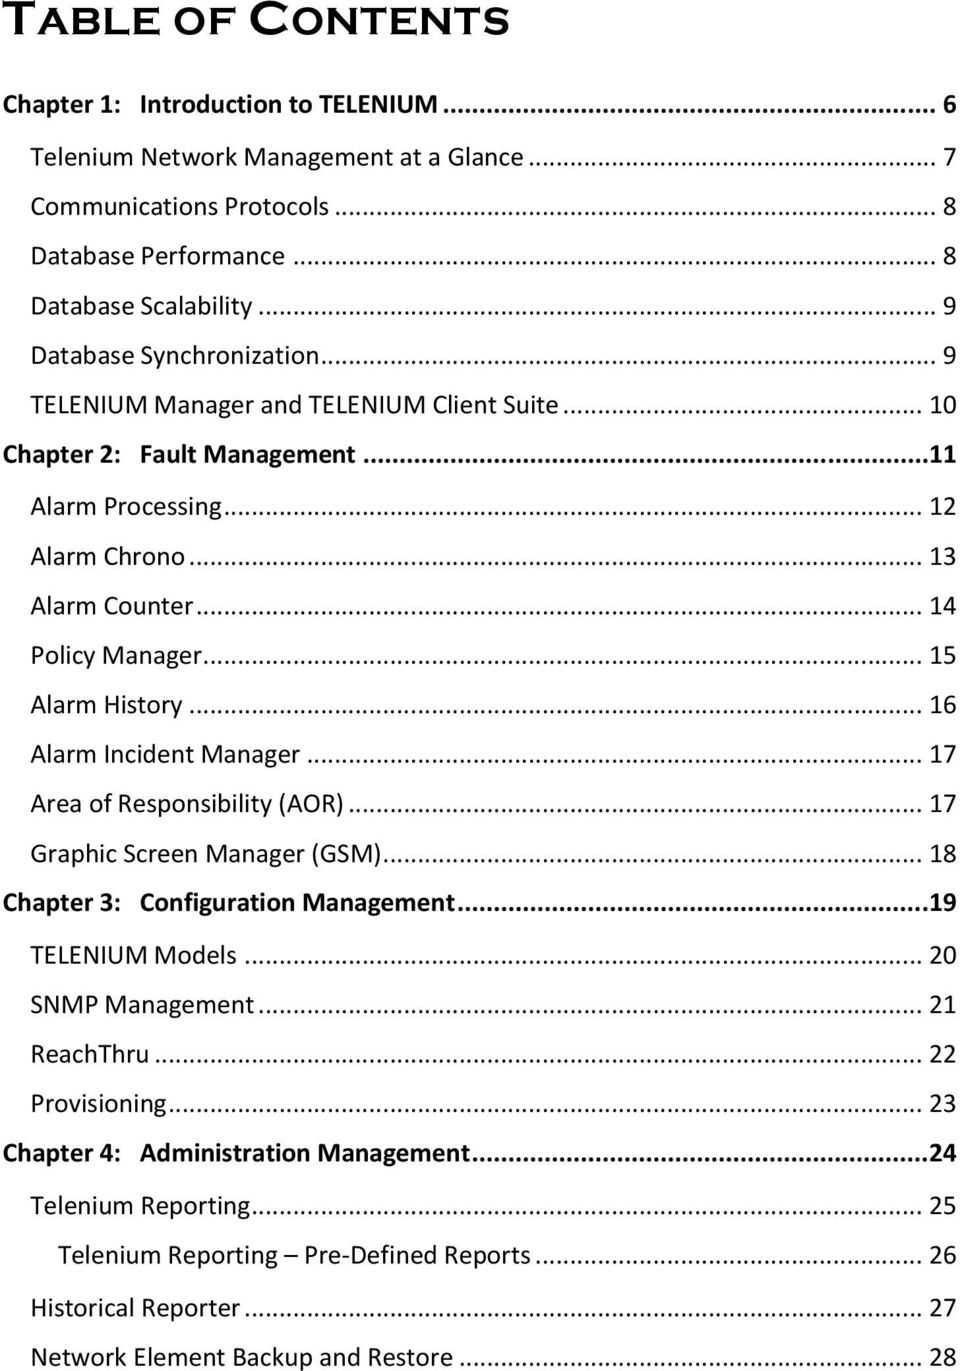 .. 15 Alarm History... 16 Alarm Incident Manager... 17 Area of Responsibility (AOR)... 17 Graphic Screen Manager (GSM)... 18 Chapter 3: Configuration Management...19 TELENIUM Models.